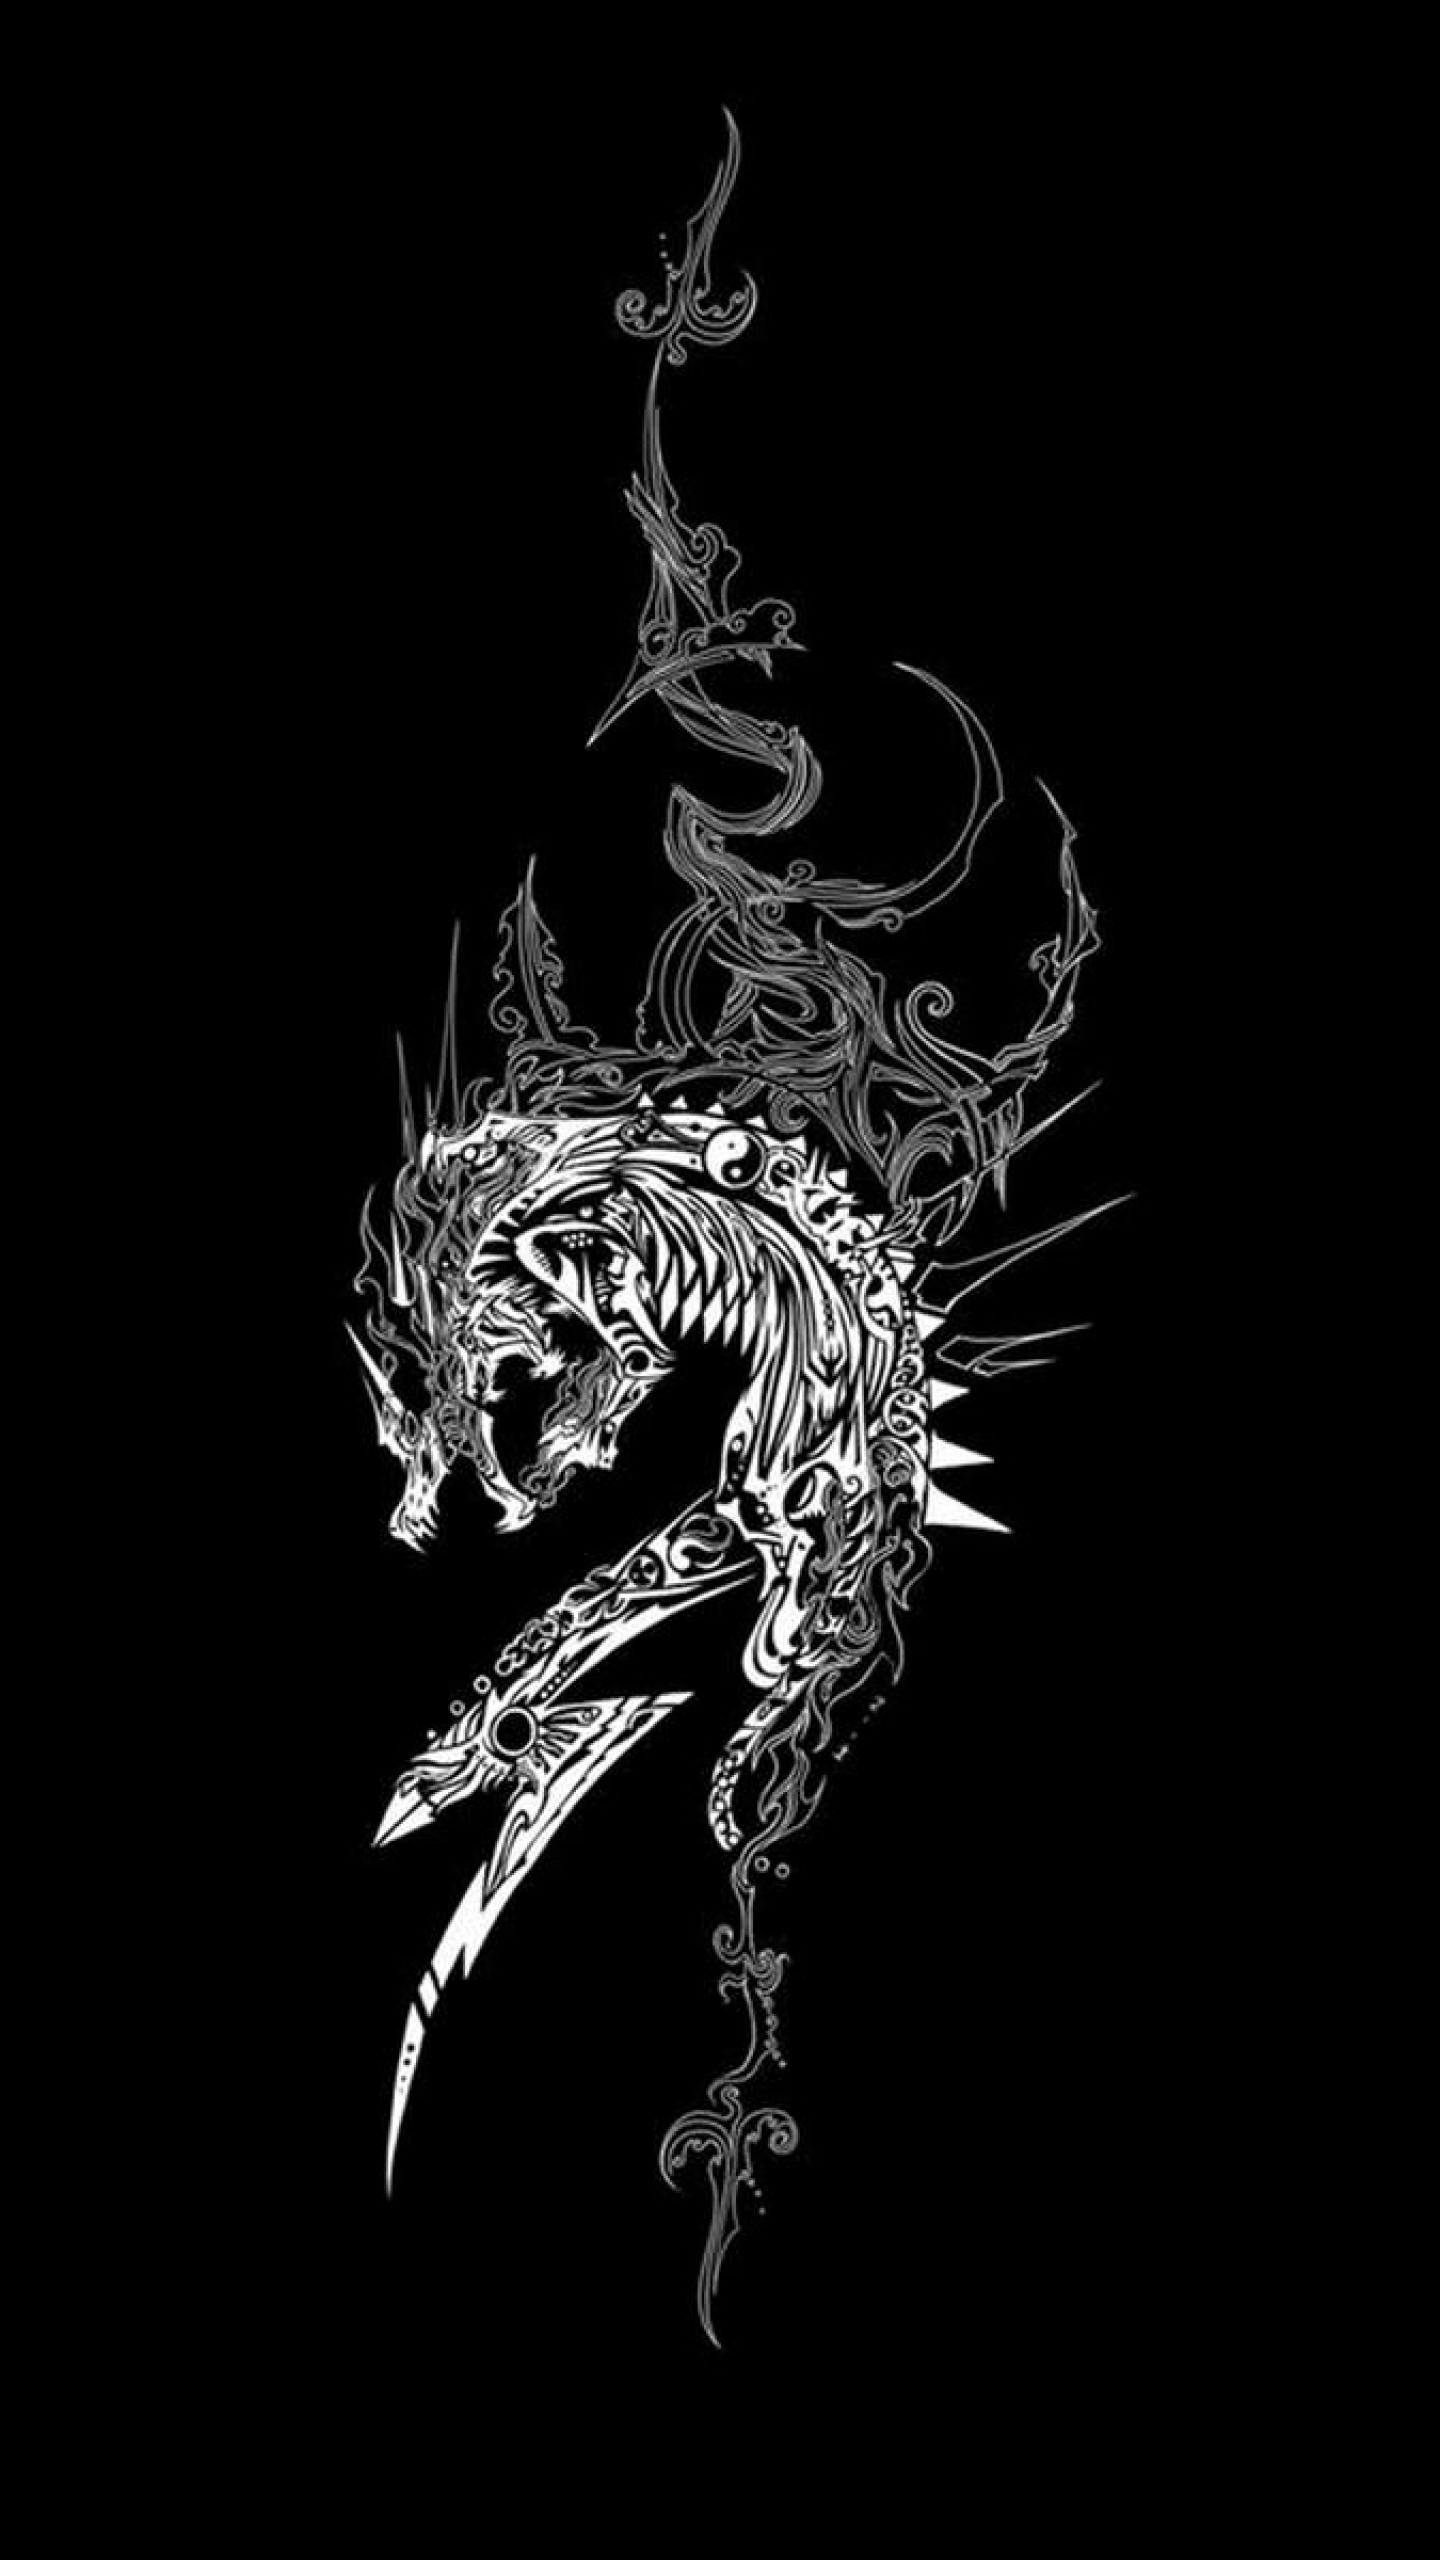 1440x2560 Preview wallpaper dragon, dark background, patterns